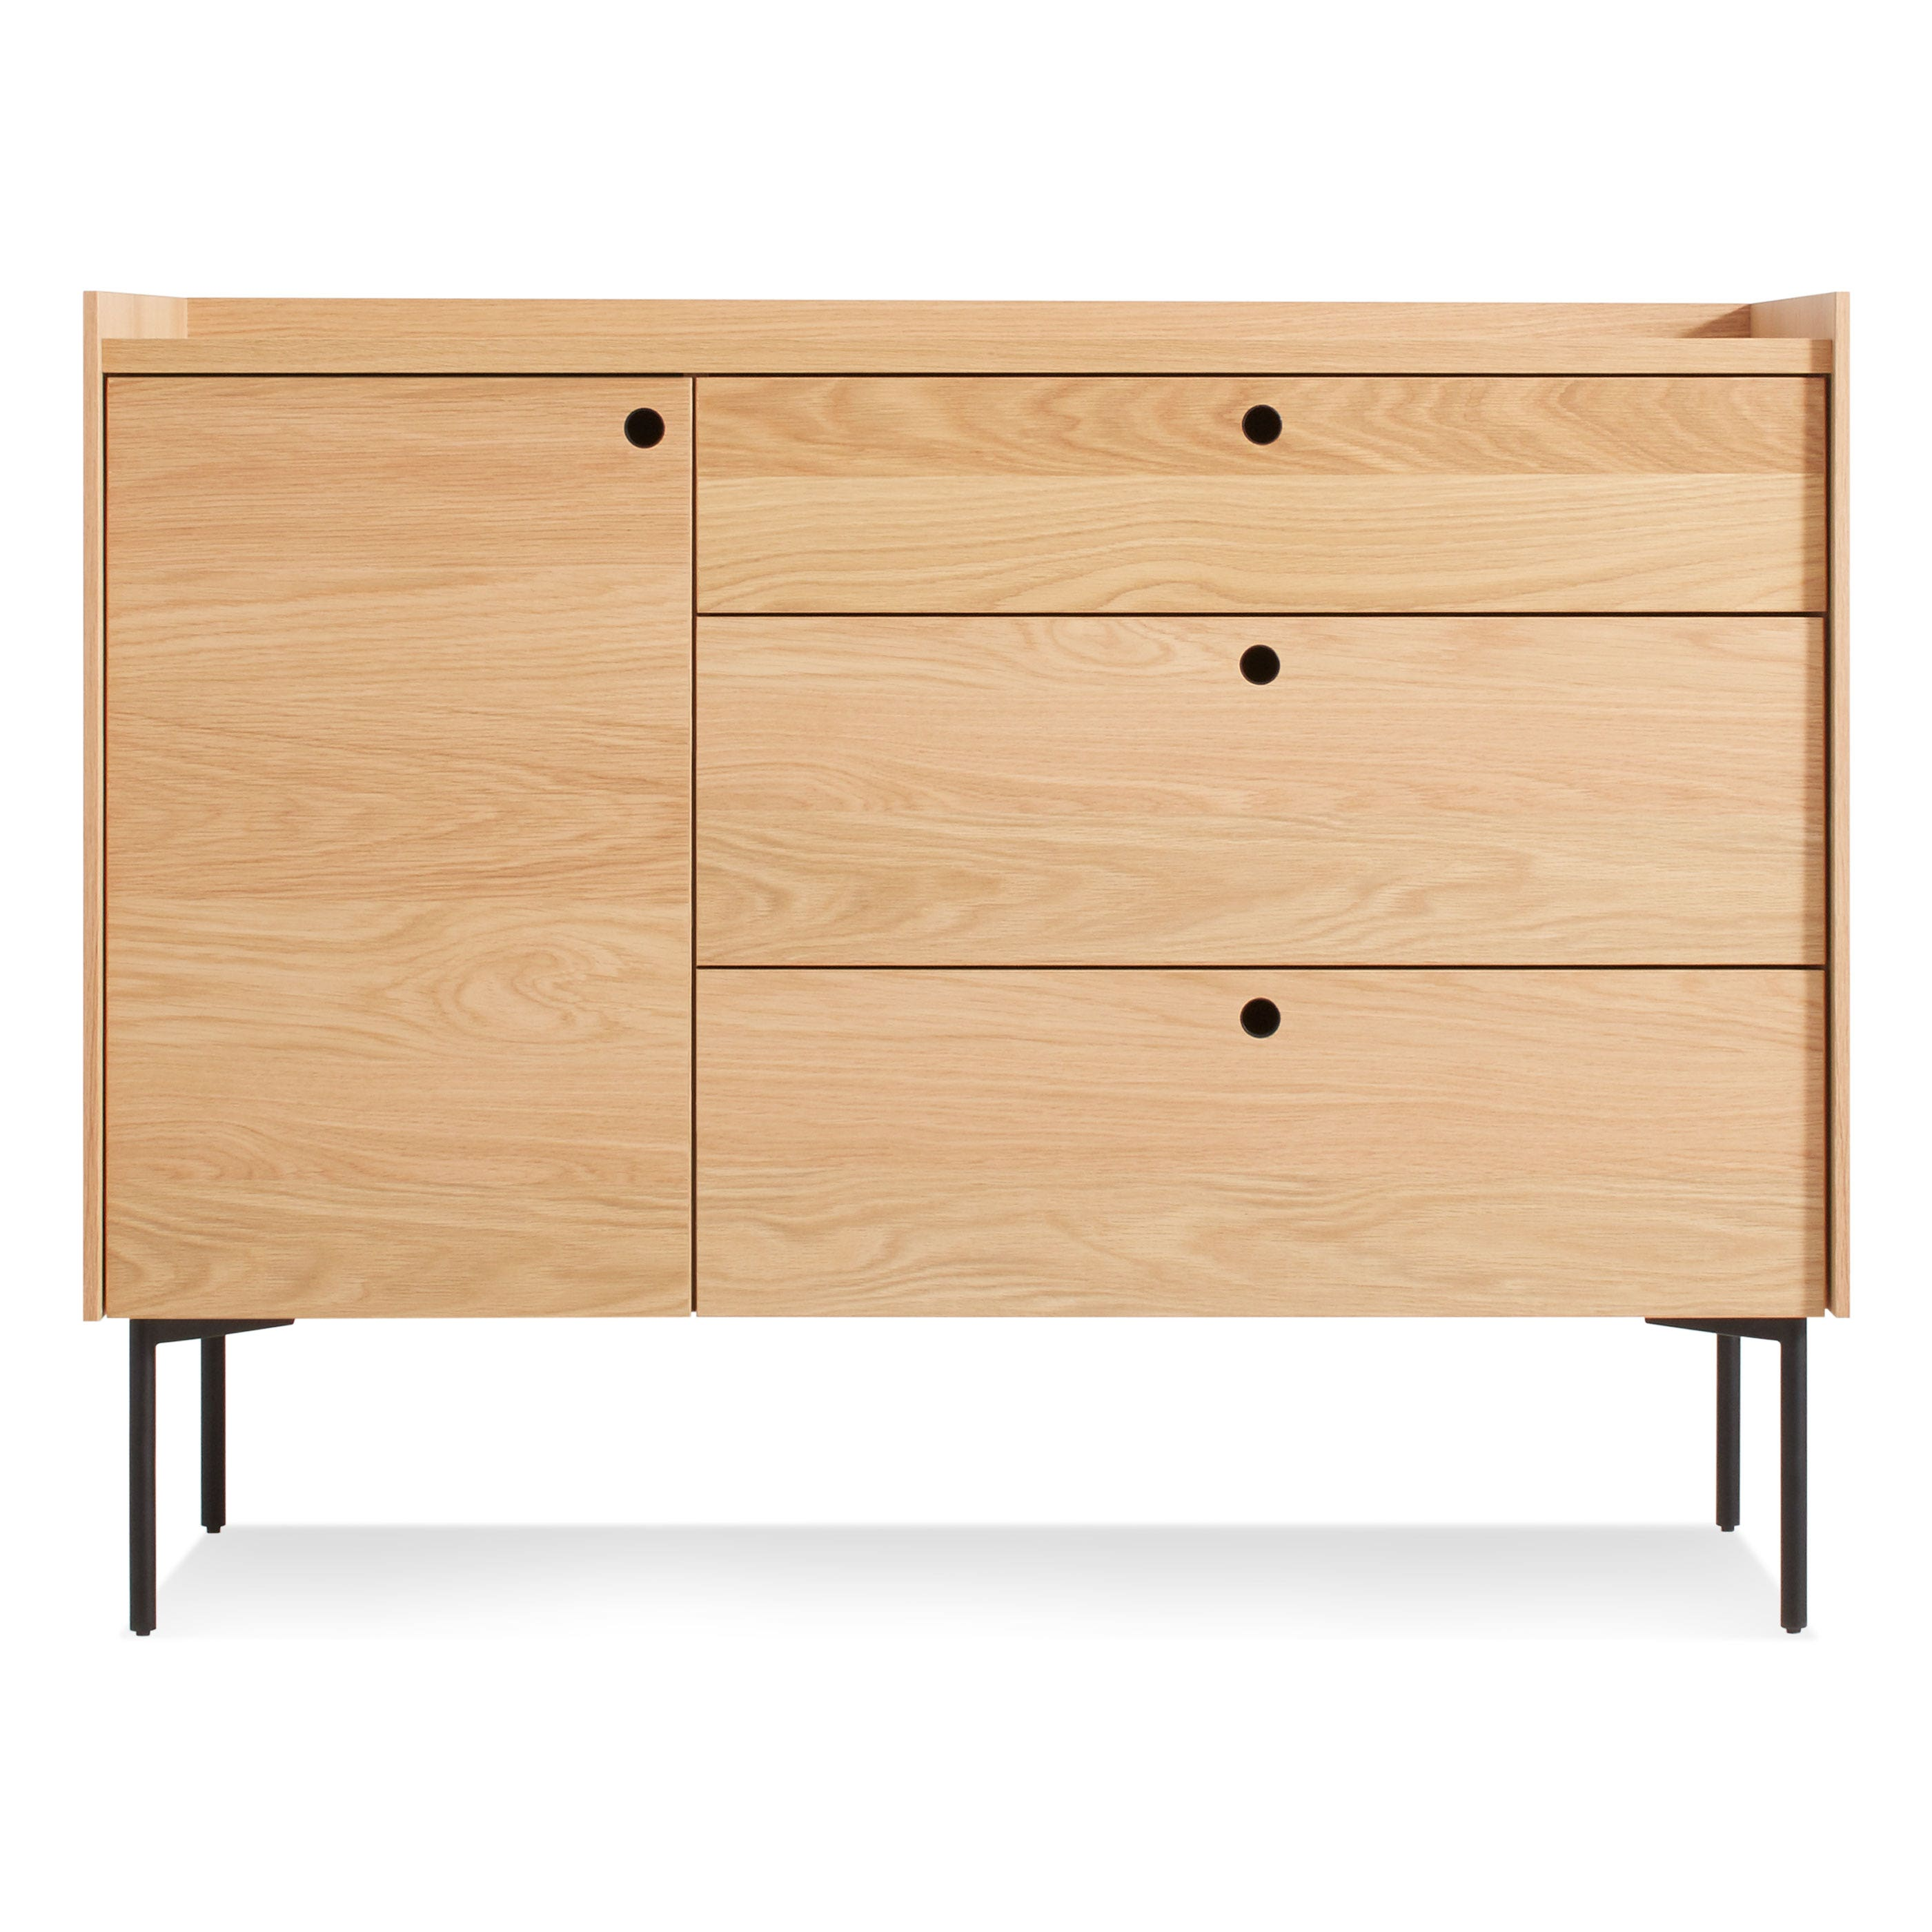 Peek 1 Door / 3 Drawer Credenza   Modern Dressers And Bedroom Storage | Blu  Dot